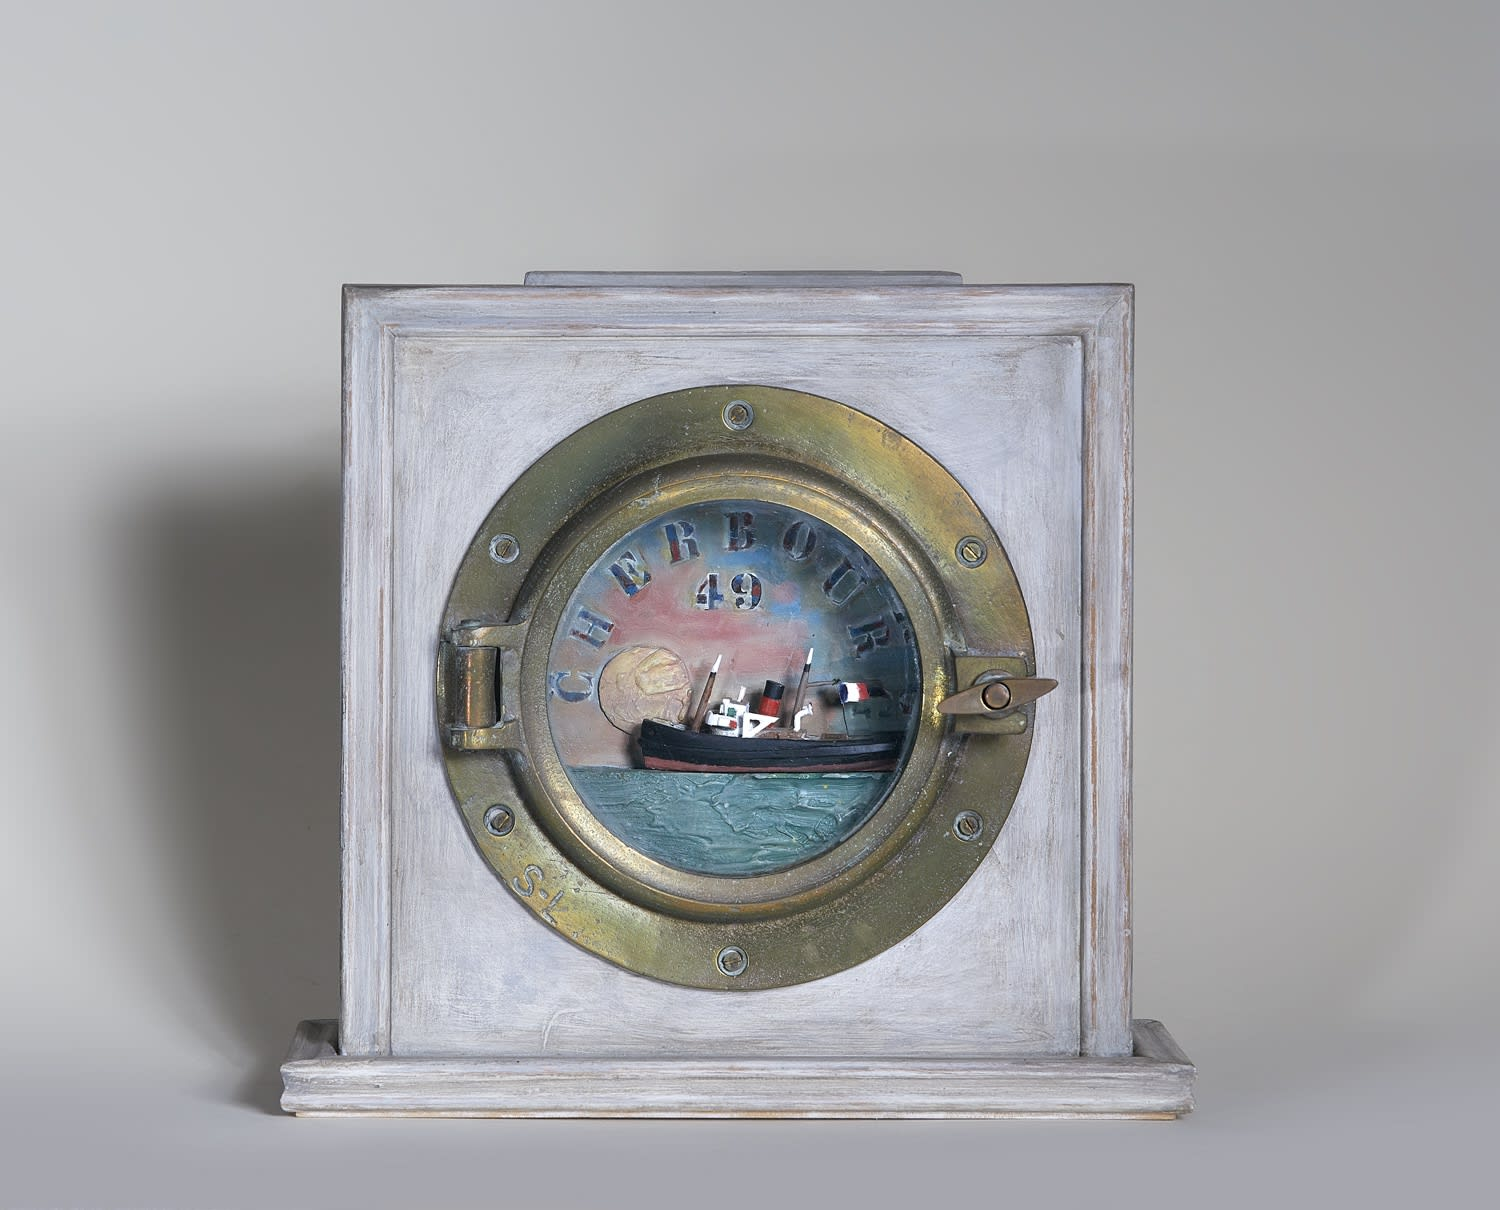 Alfred Cohen (1920-2001) Cherbourg 1949 c. 1999 Assemblage: wood, brass porthole, glass, and mixed media 33 x 31.8 cm © Estate of Alfred Cohen 2020